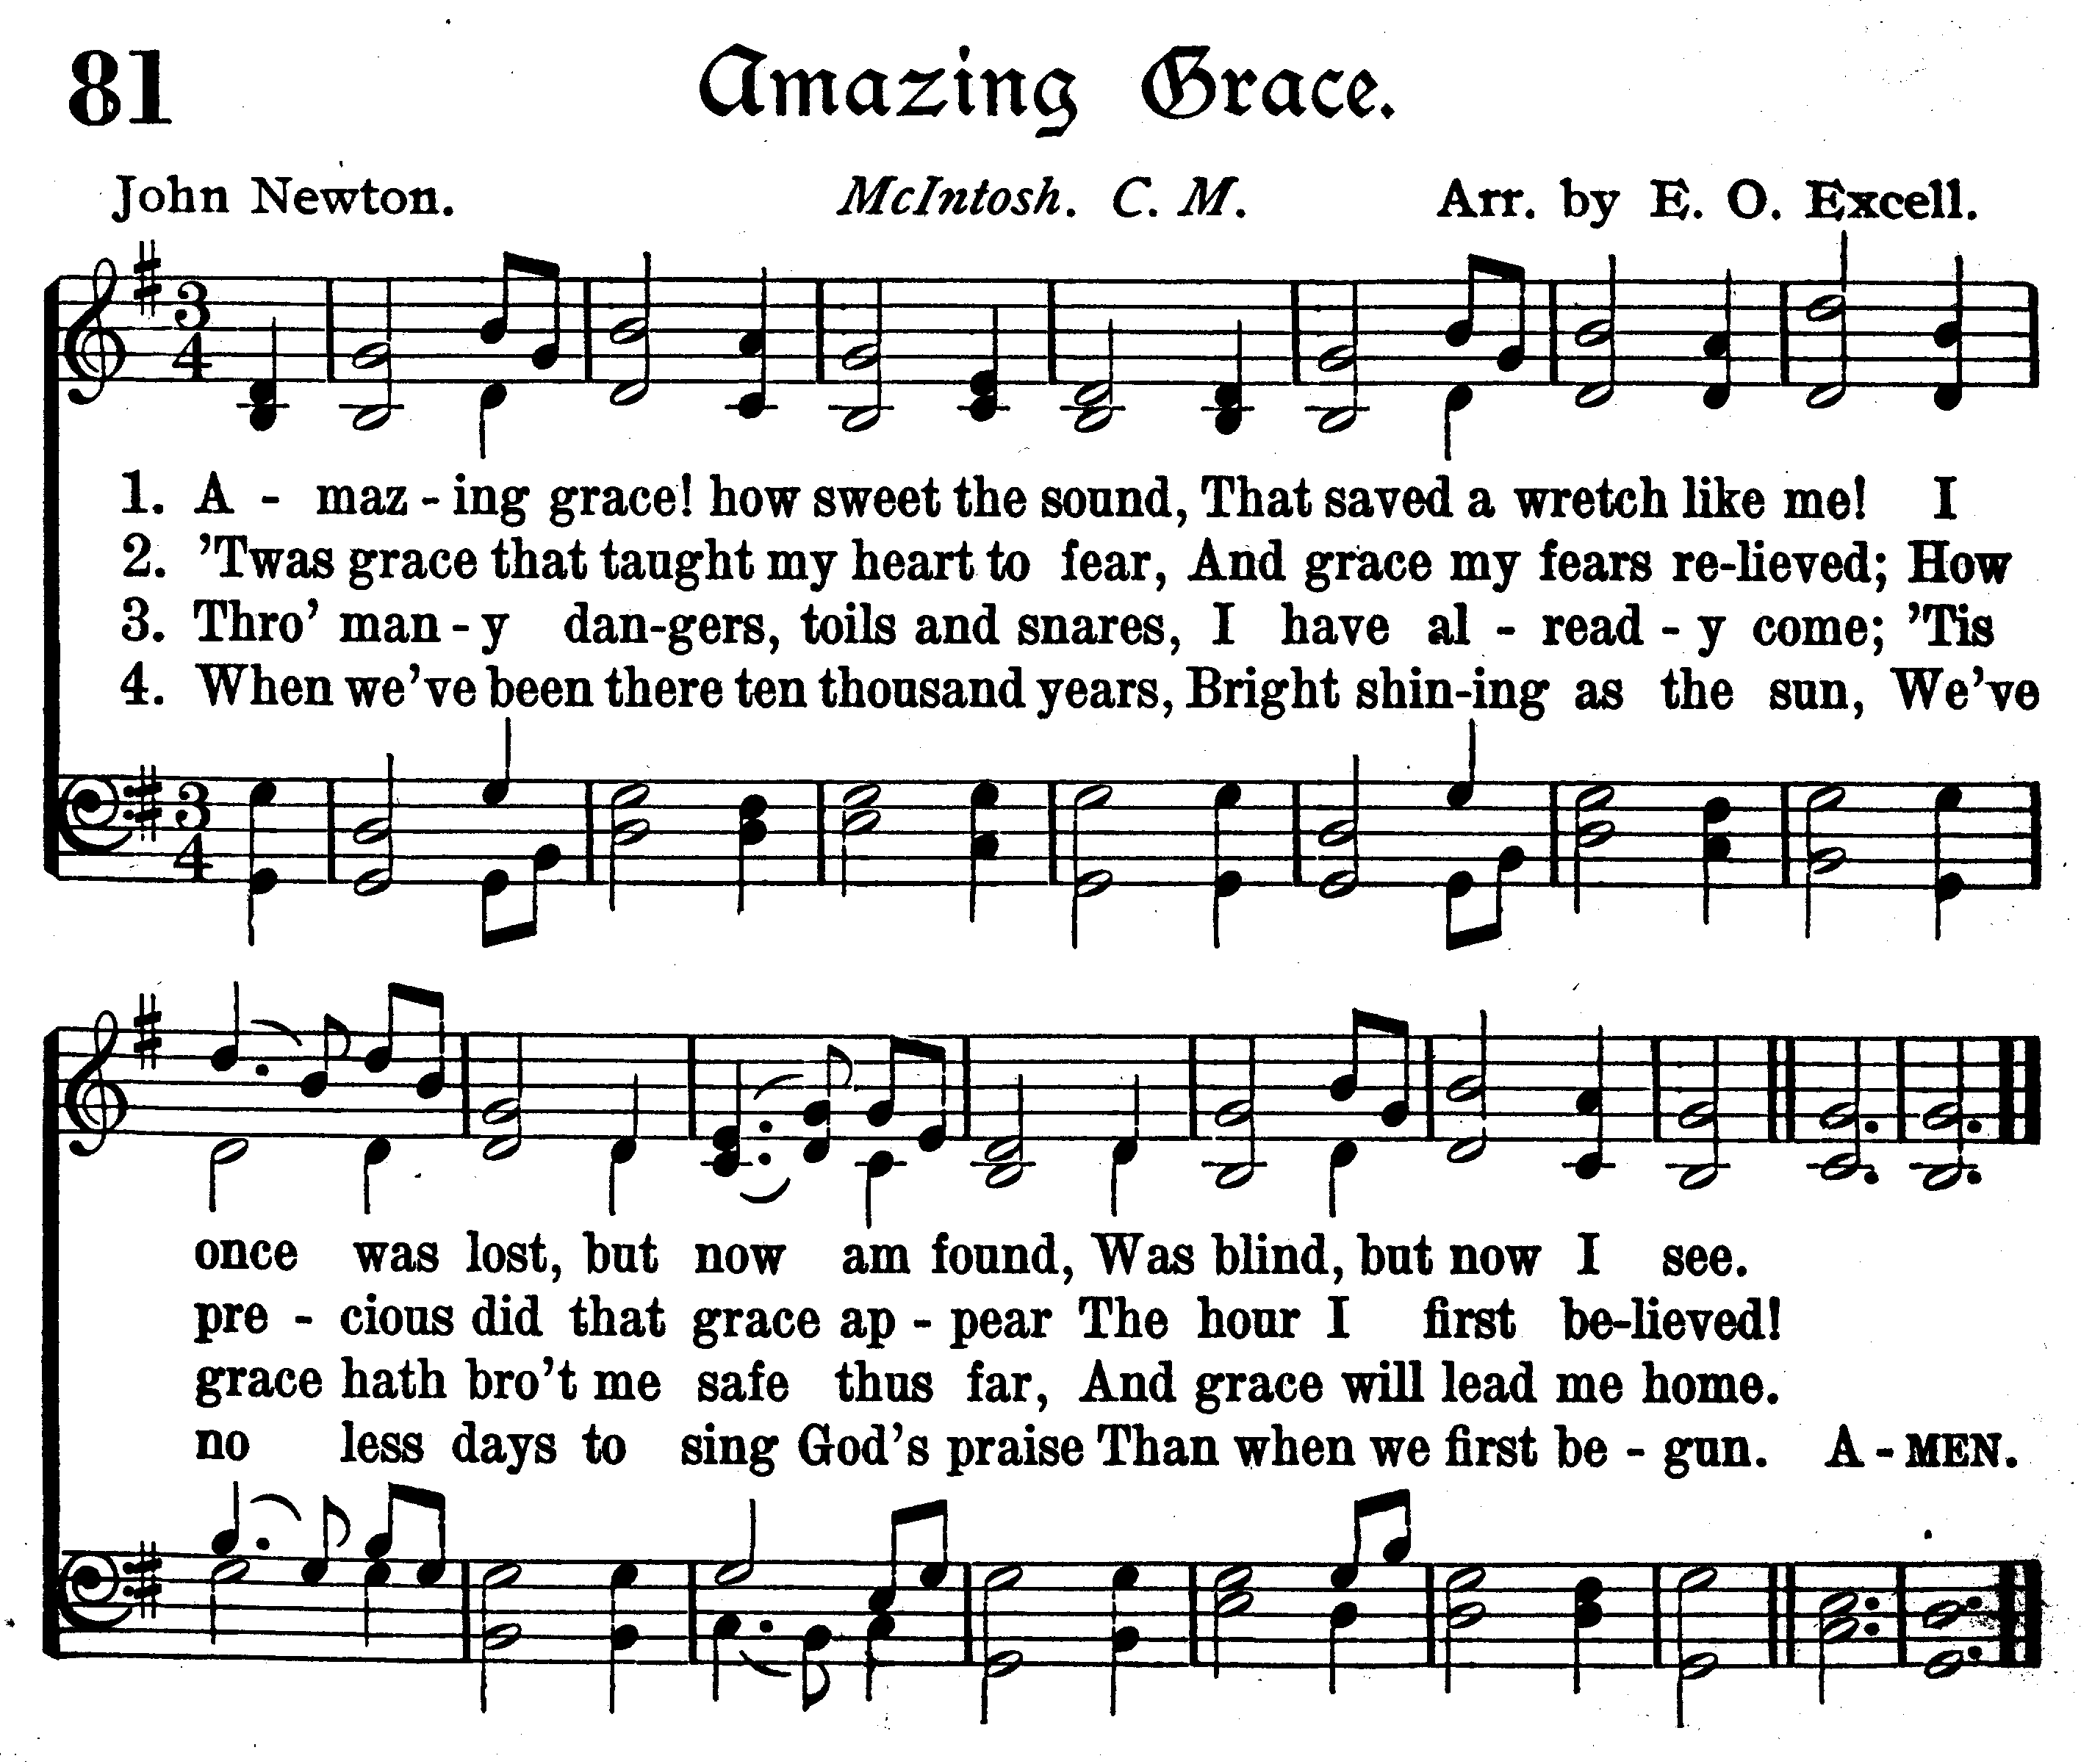 Amazing Grace, How Sweet The Sound, That Saved A Wretch